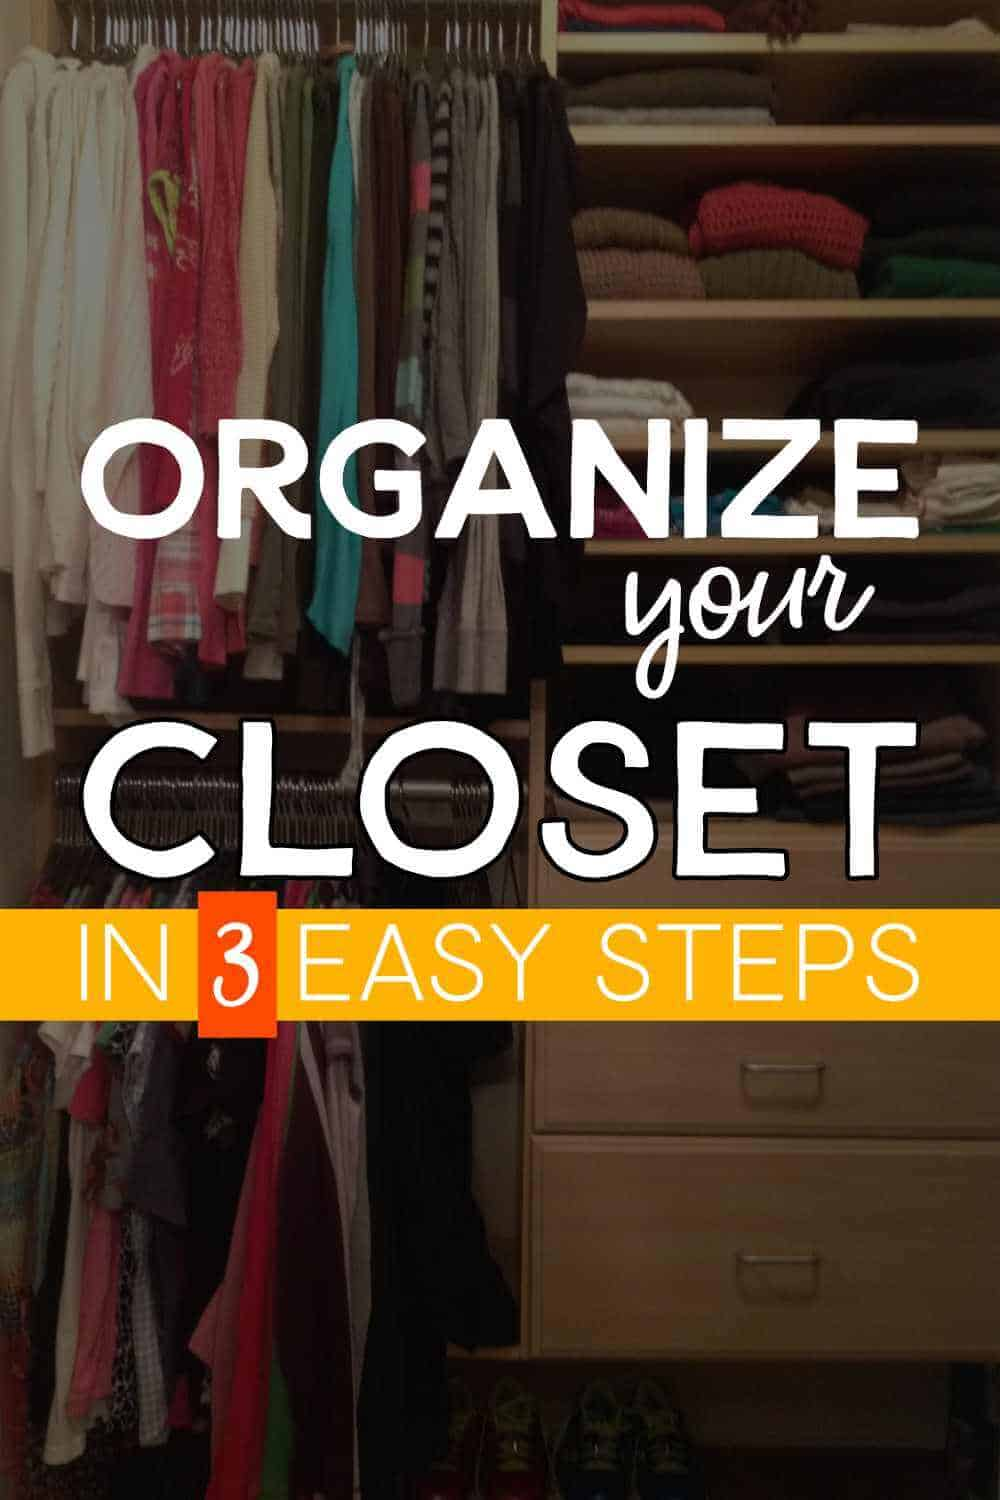 Organize your closet in three easy steps.